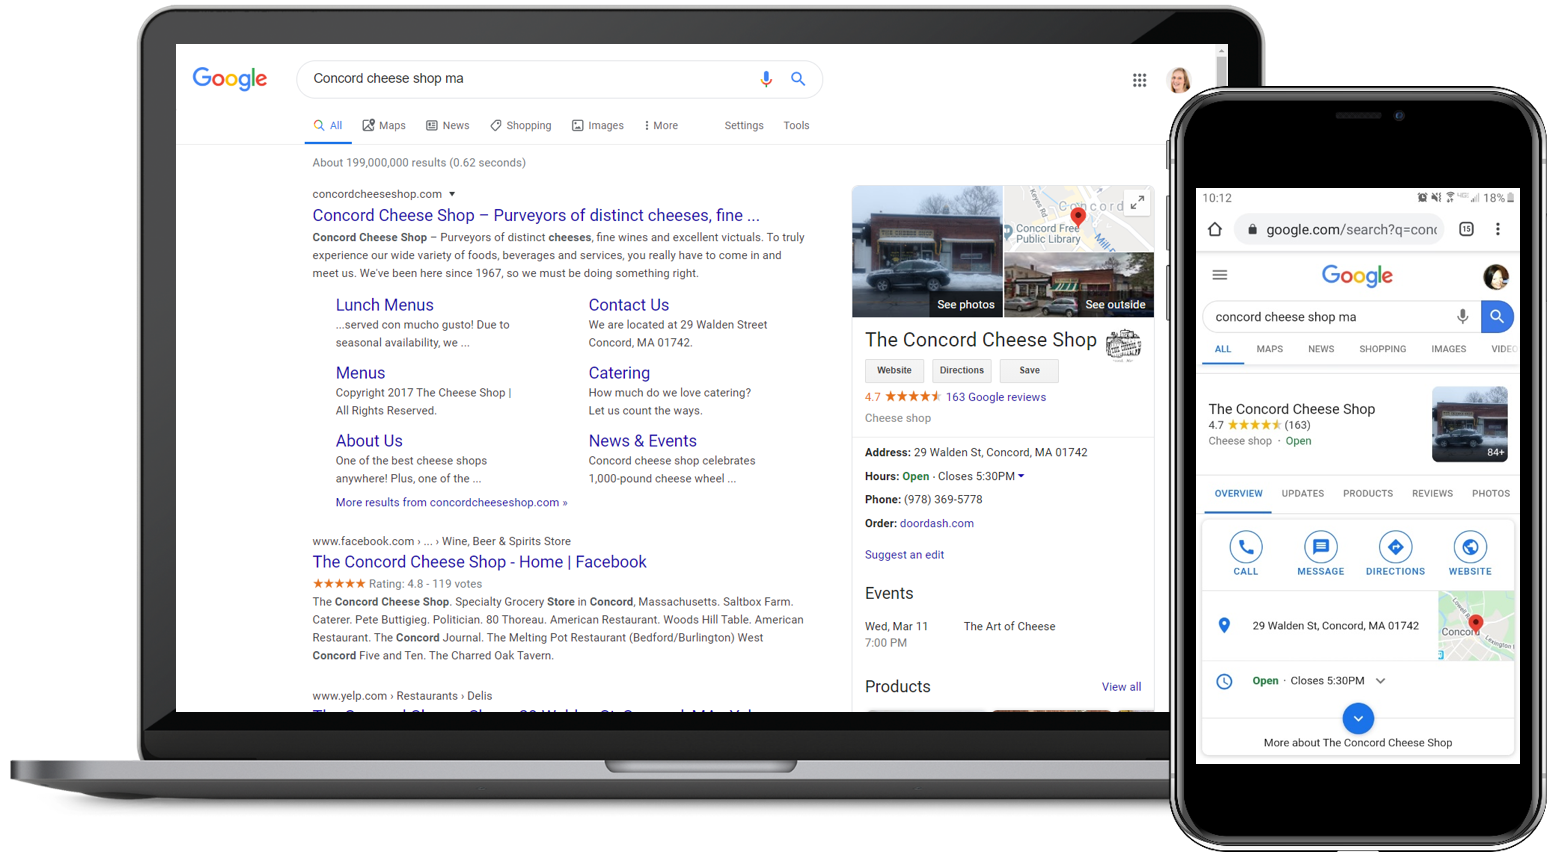 Claiming Your Business: Listings and Reviews